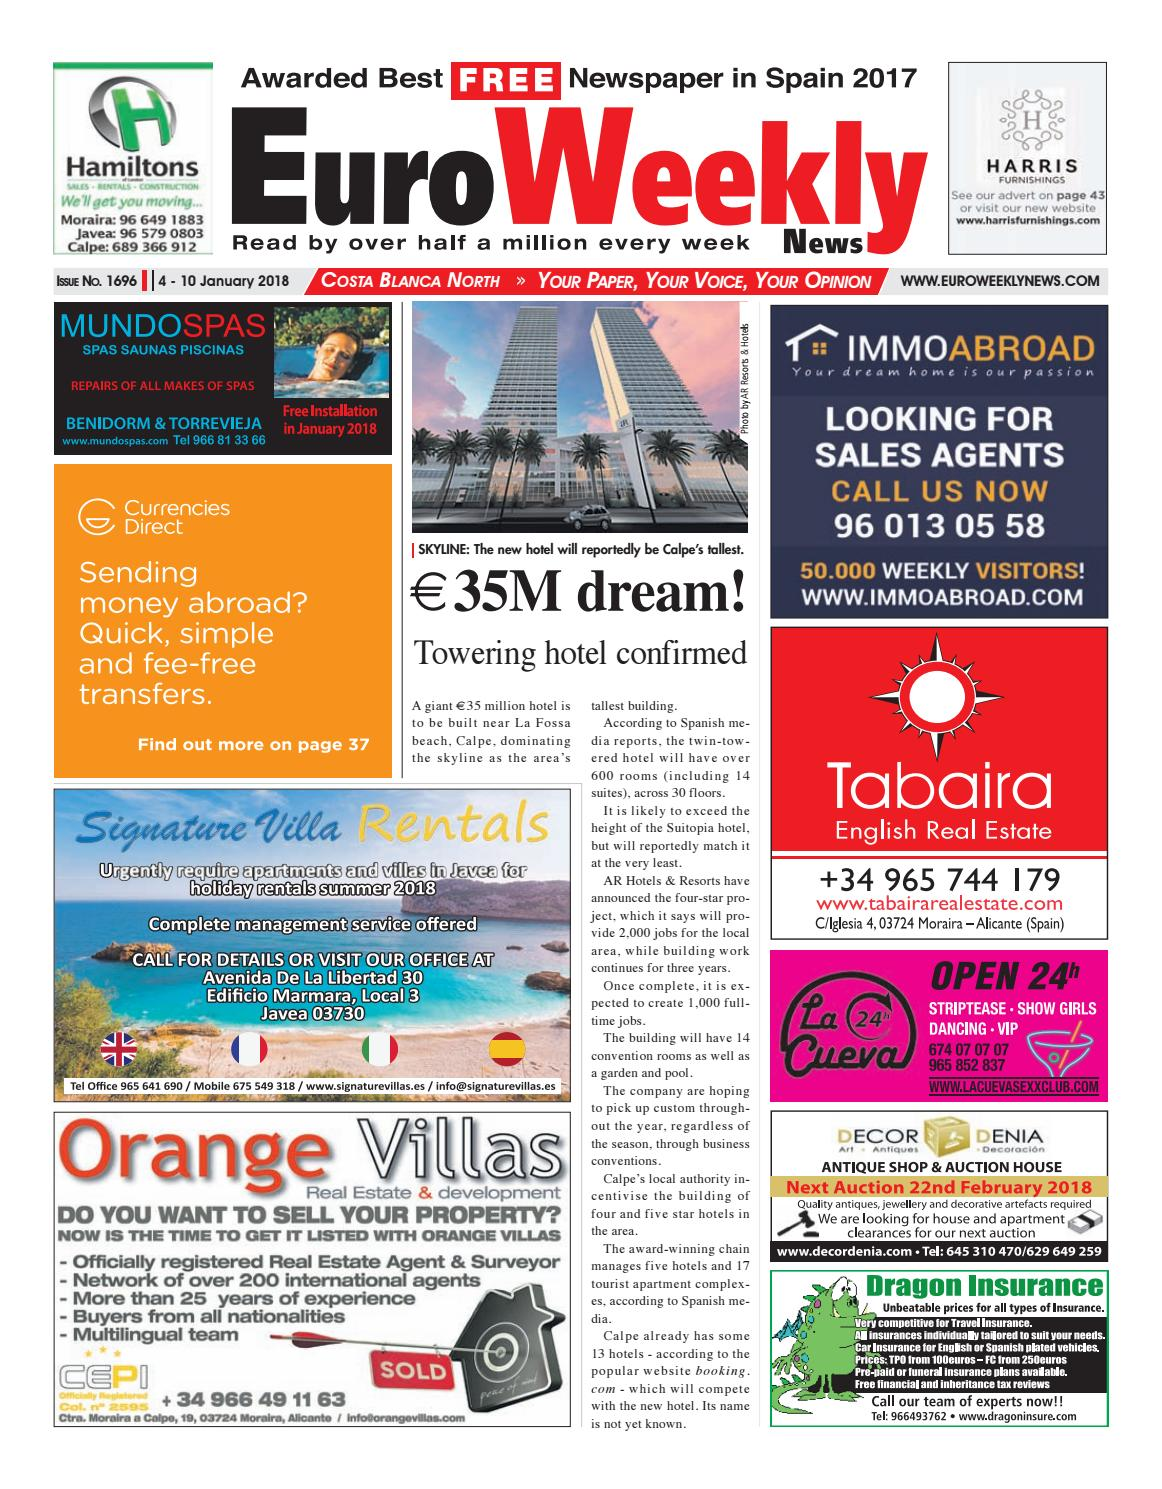 Euro weekly news costa blanca north 4 10 jan 2018 issue 1696 by euro weekly news costa blanca north 4 10 jan 2018 issue 1696 by euro weekly news media sa issuu fandeluxe Gallery